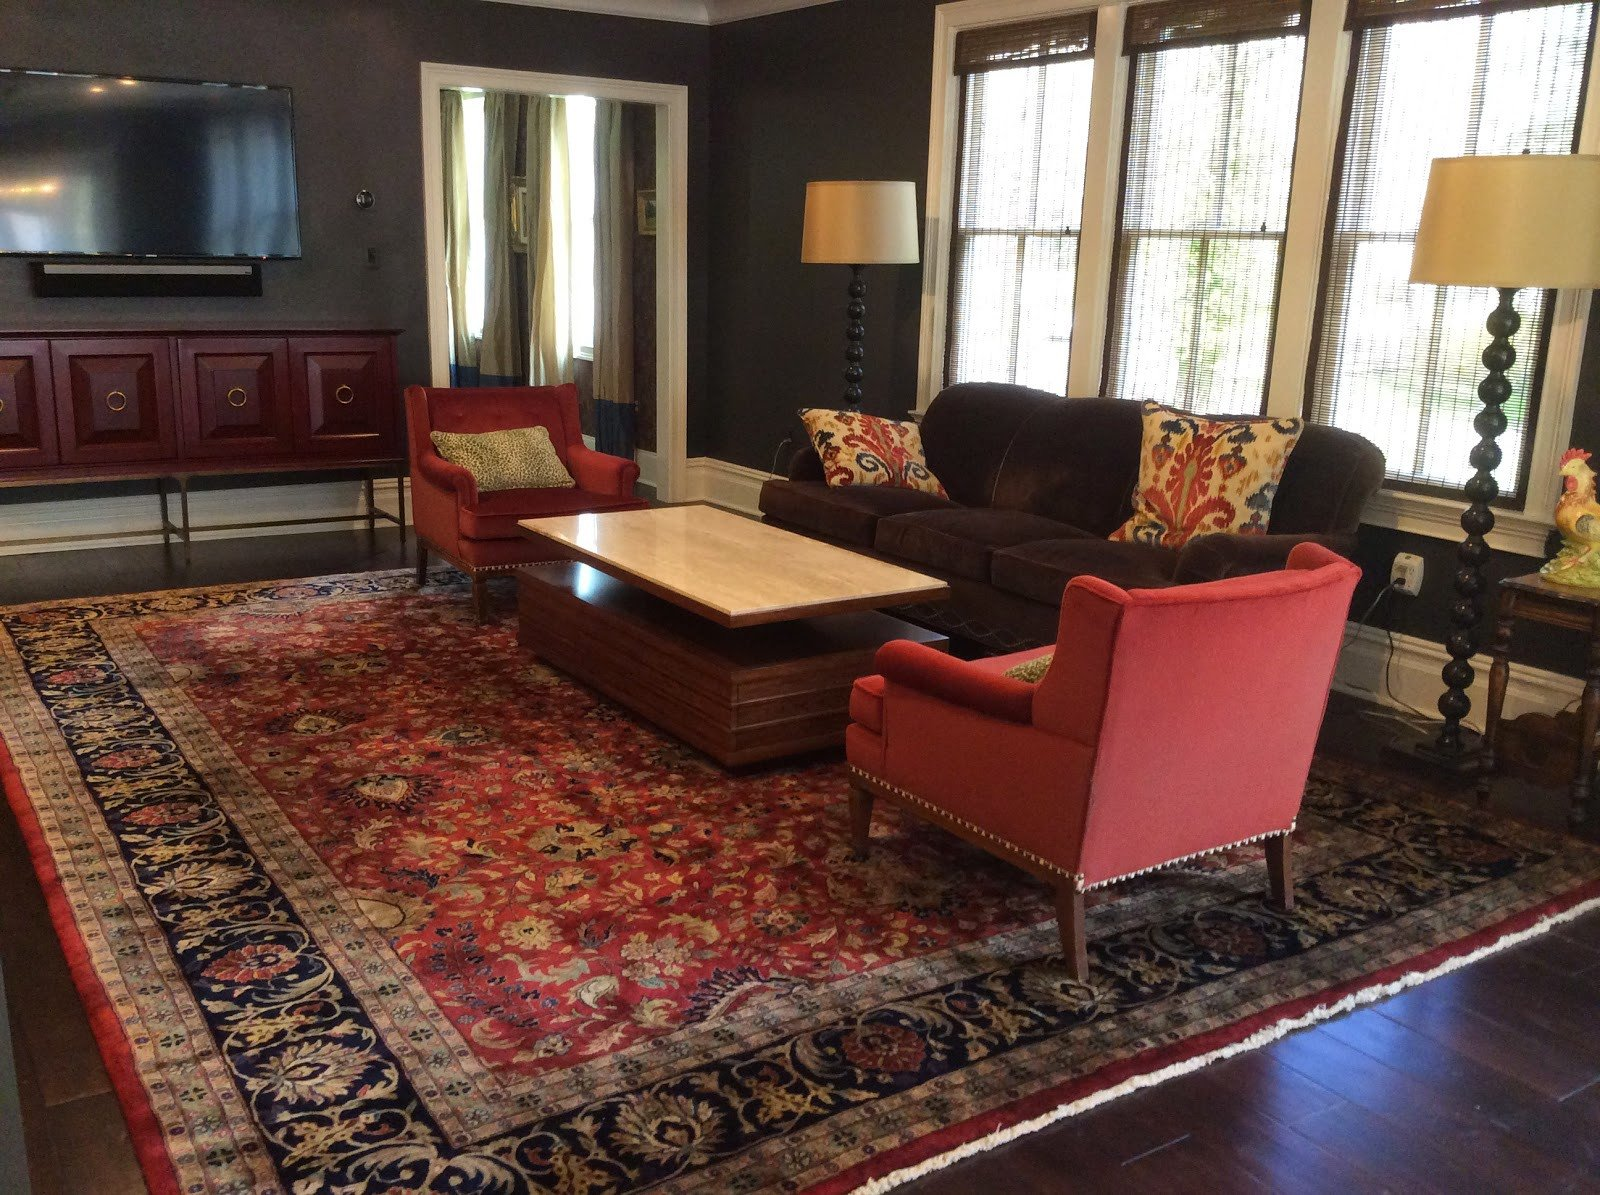 Comfortable Living Room Rugs Unique Brandon oriental Rugs Home Renovation In Princeton Nj Pleted with New oriental Rug Photos